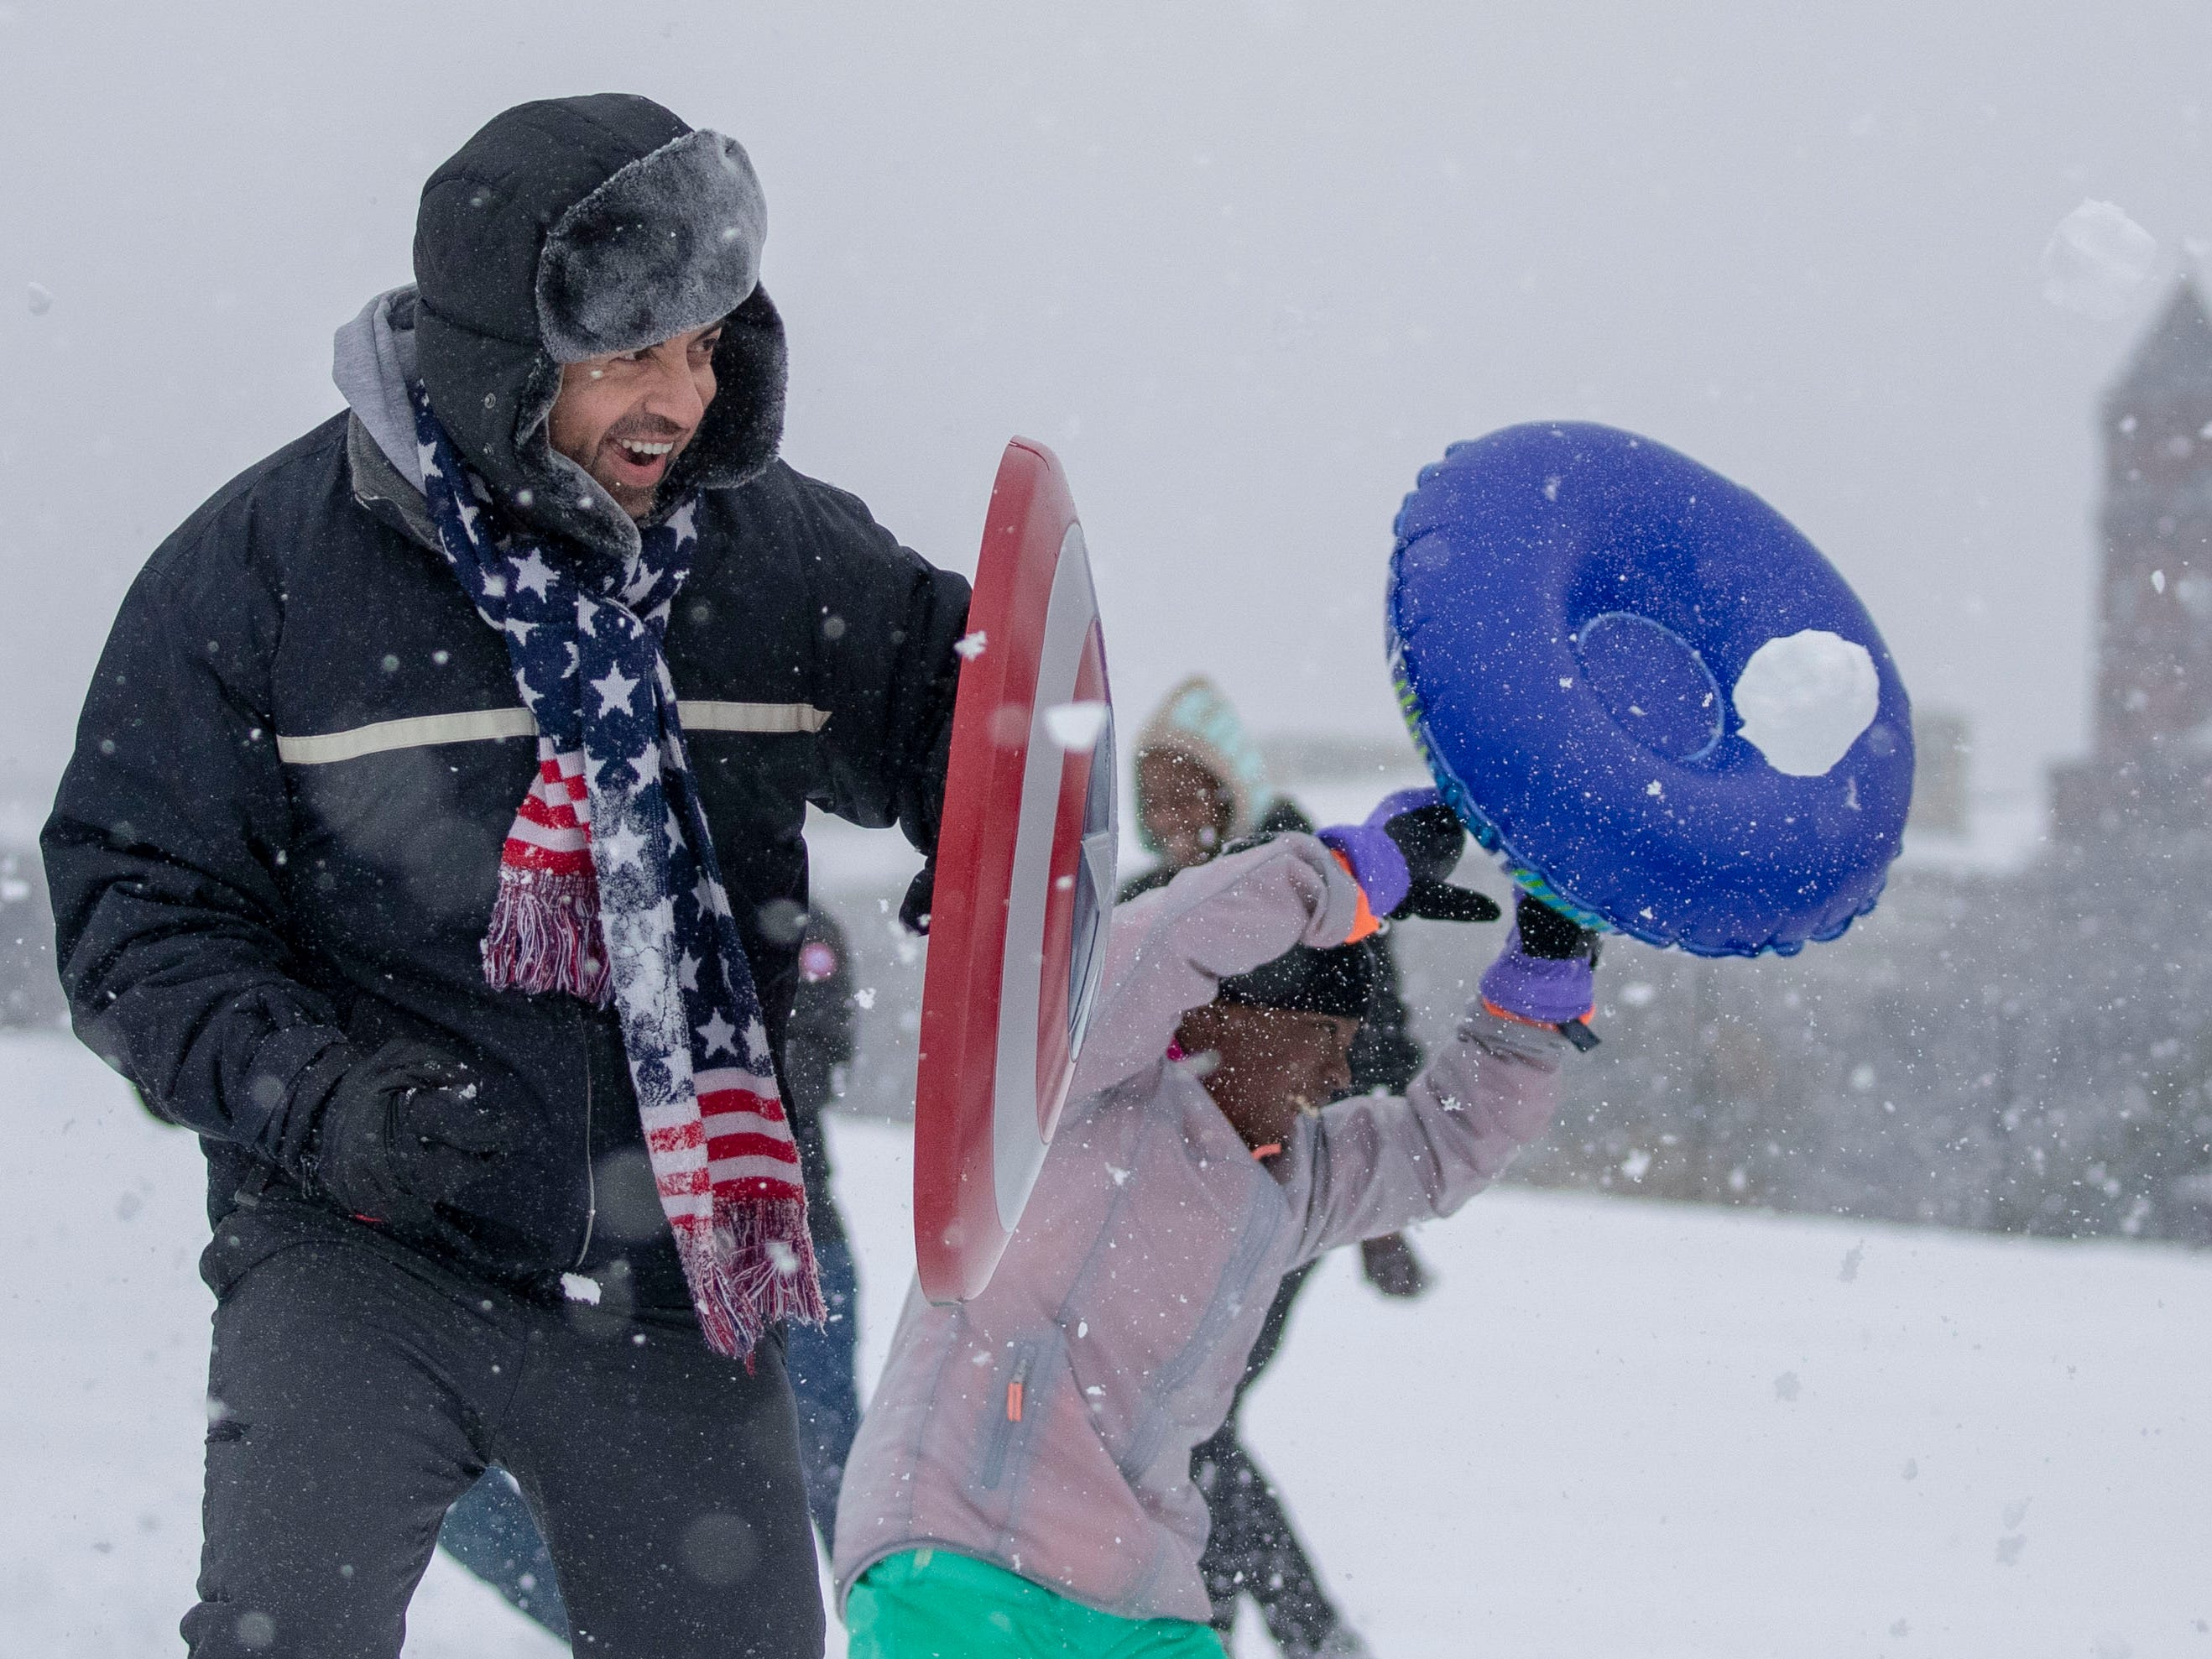 People participate in a snowball fight on the National Mall in Washington on Jan. 13, 2019.